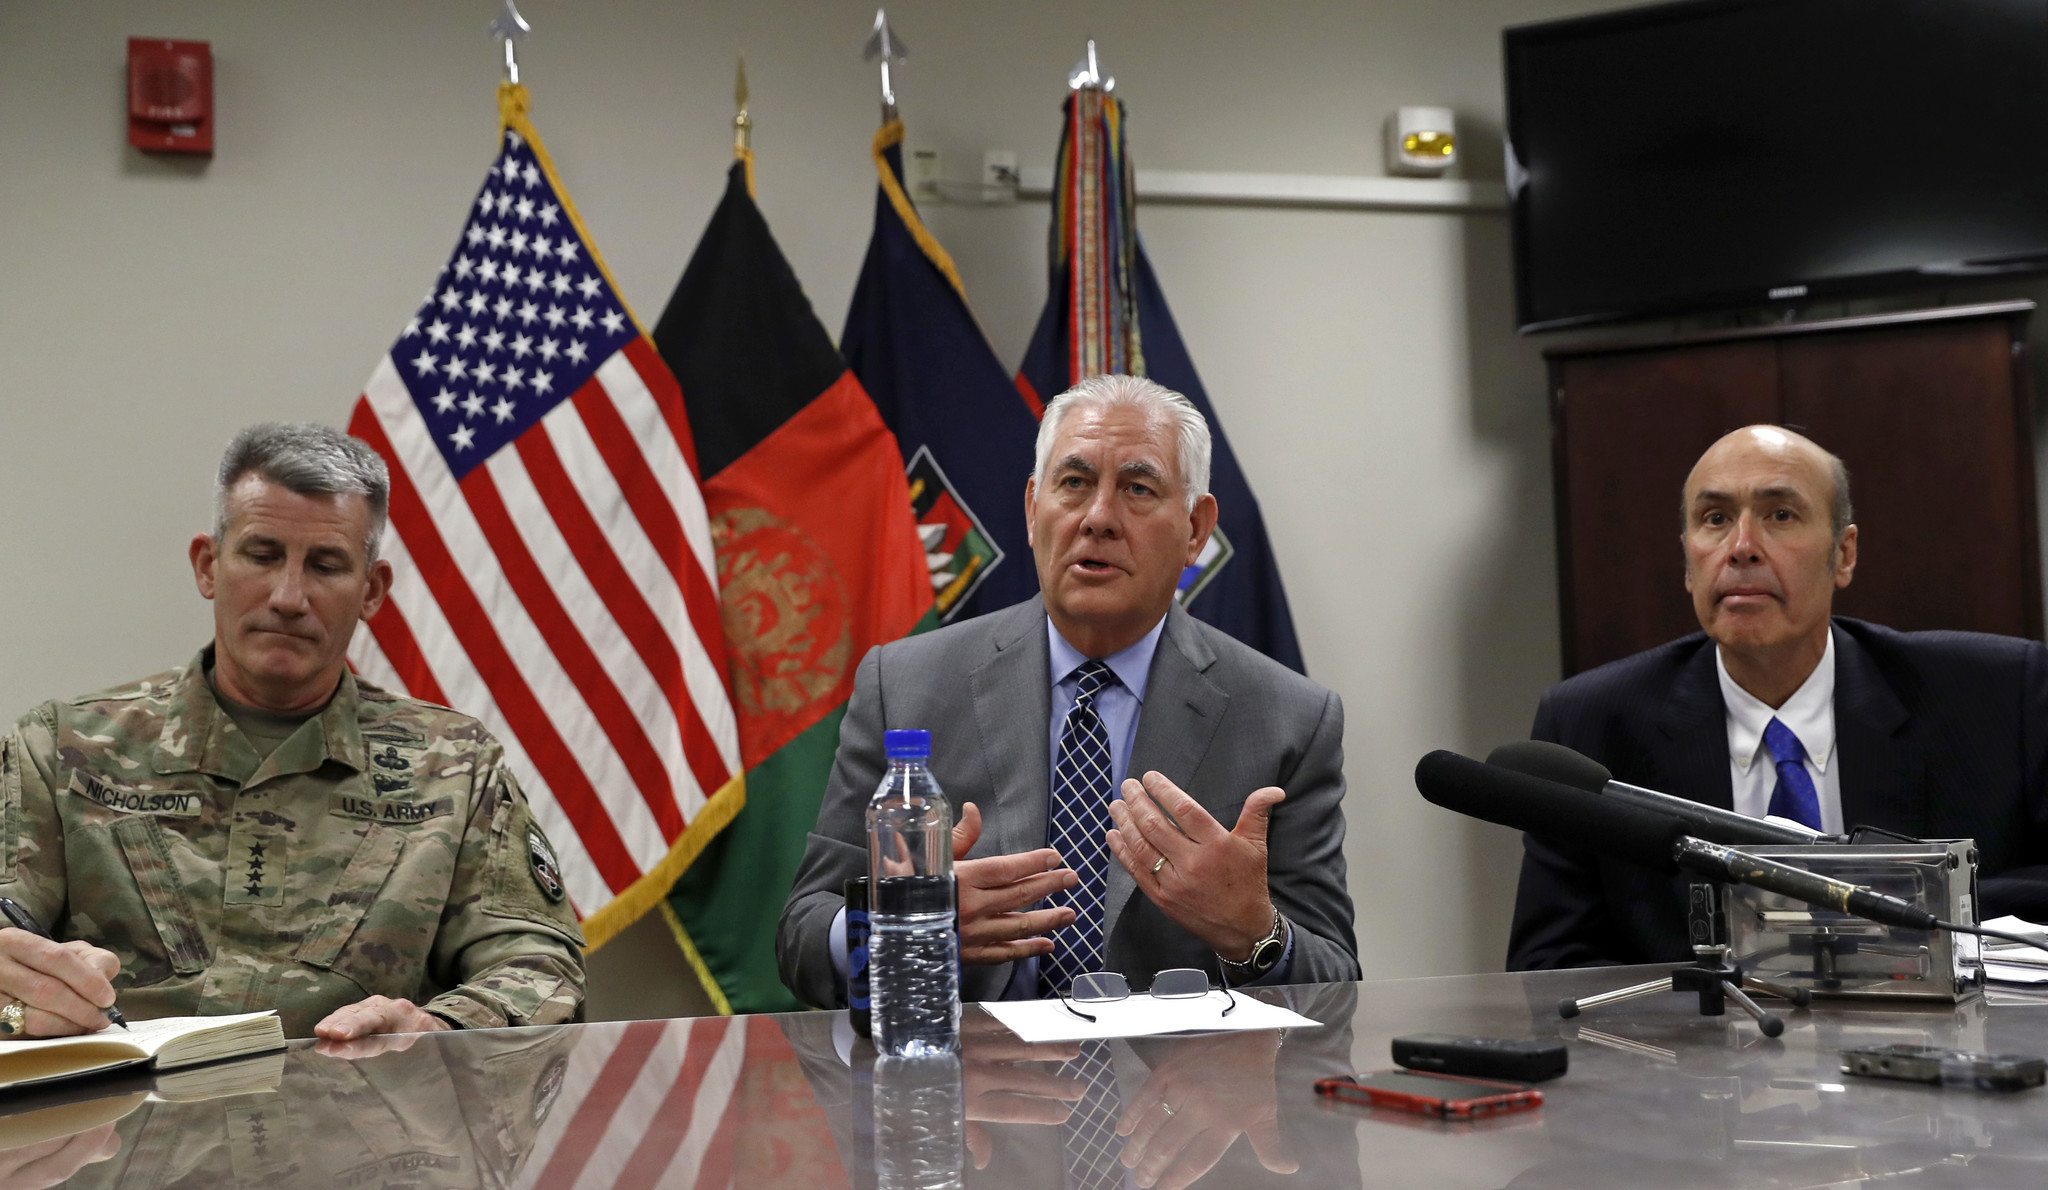 Tillerson travels to Iraq in second unannounced visit, hours after trip to Afghanistan